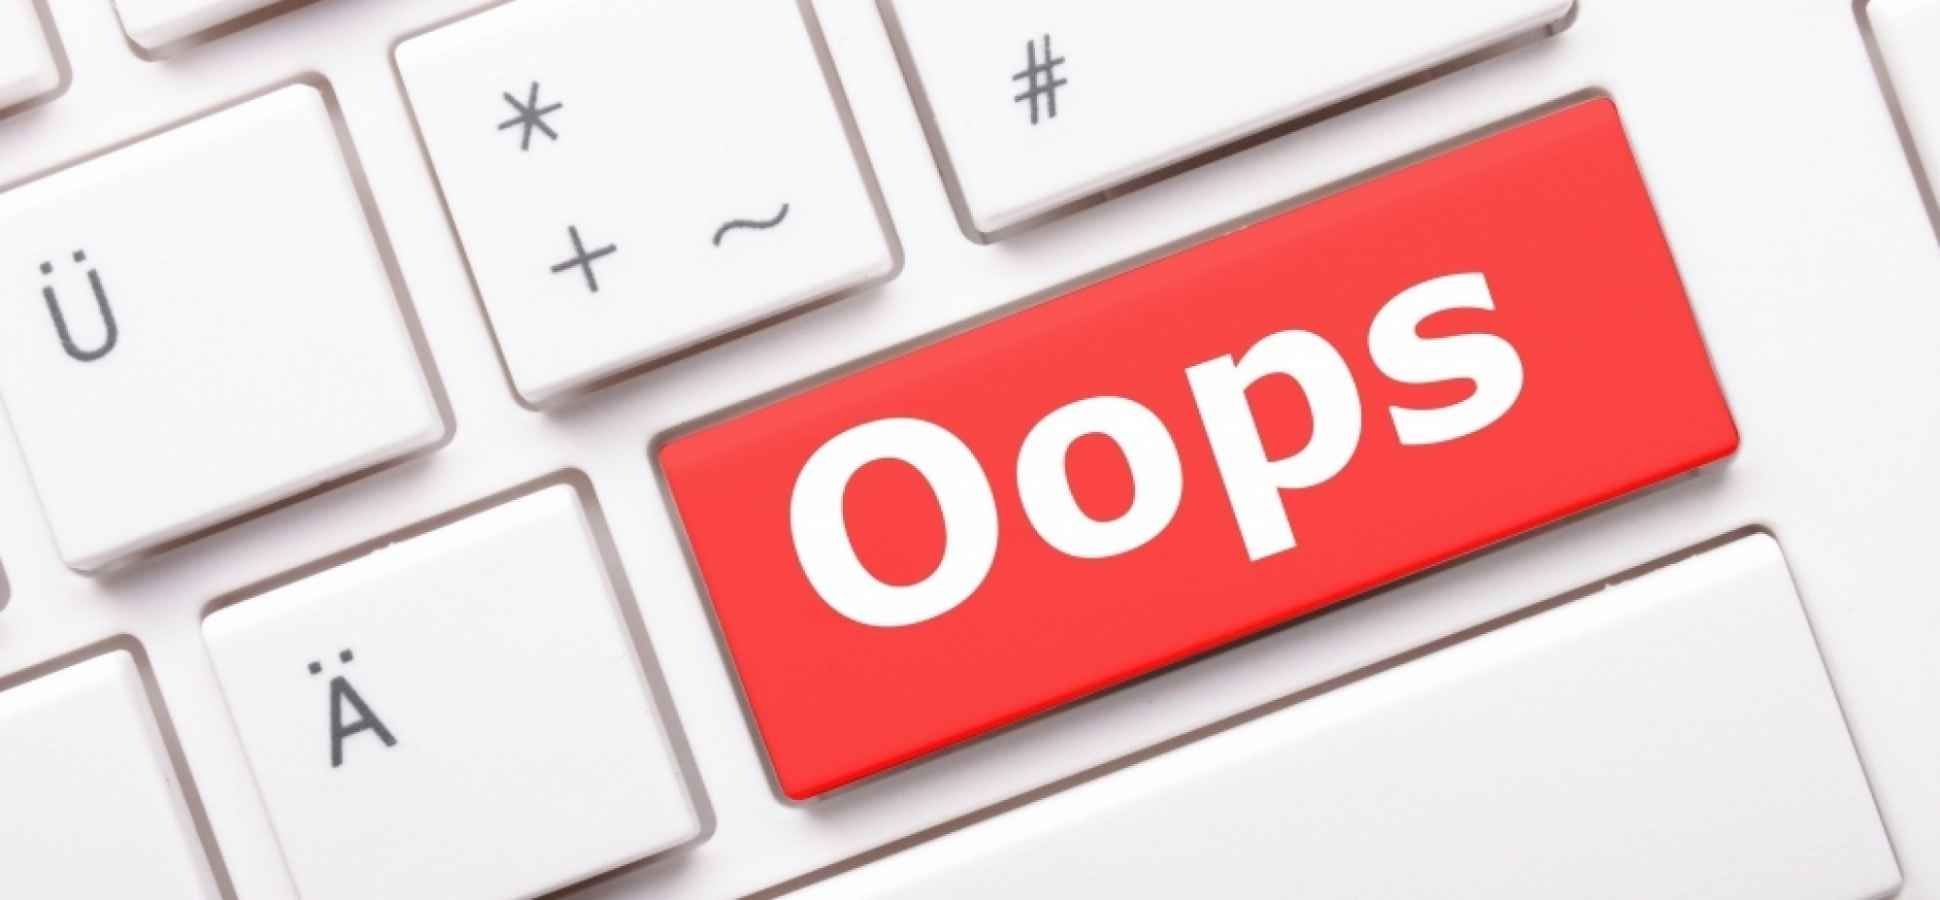 The Right Way to Help a Customer Who Made Mistake